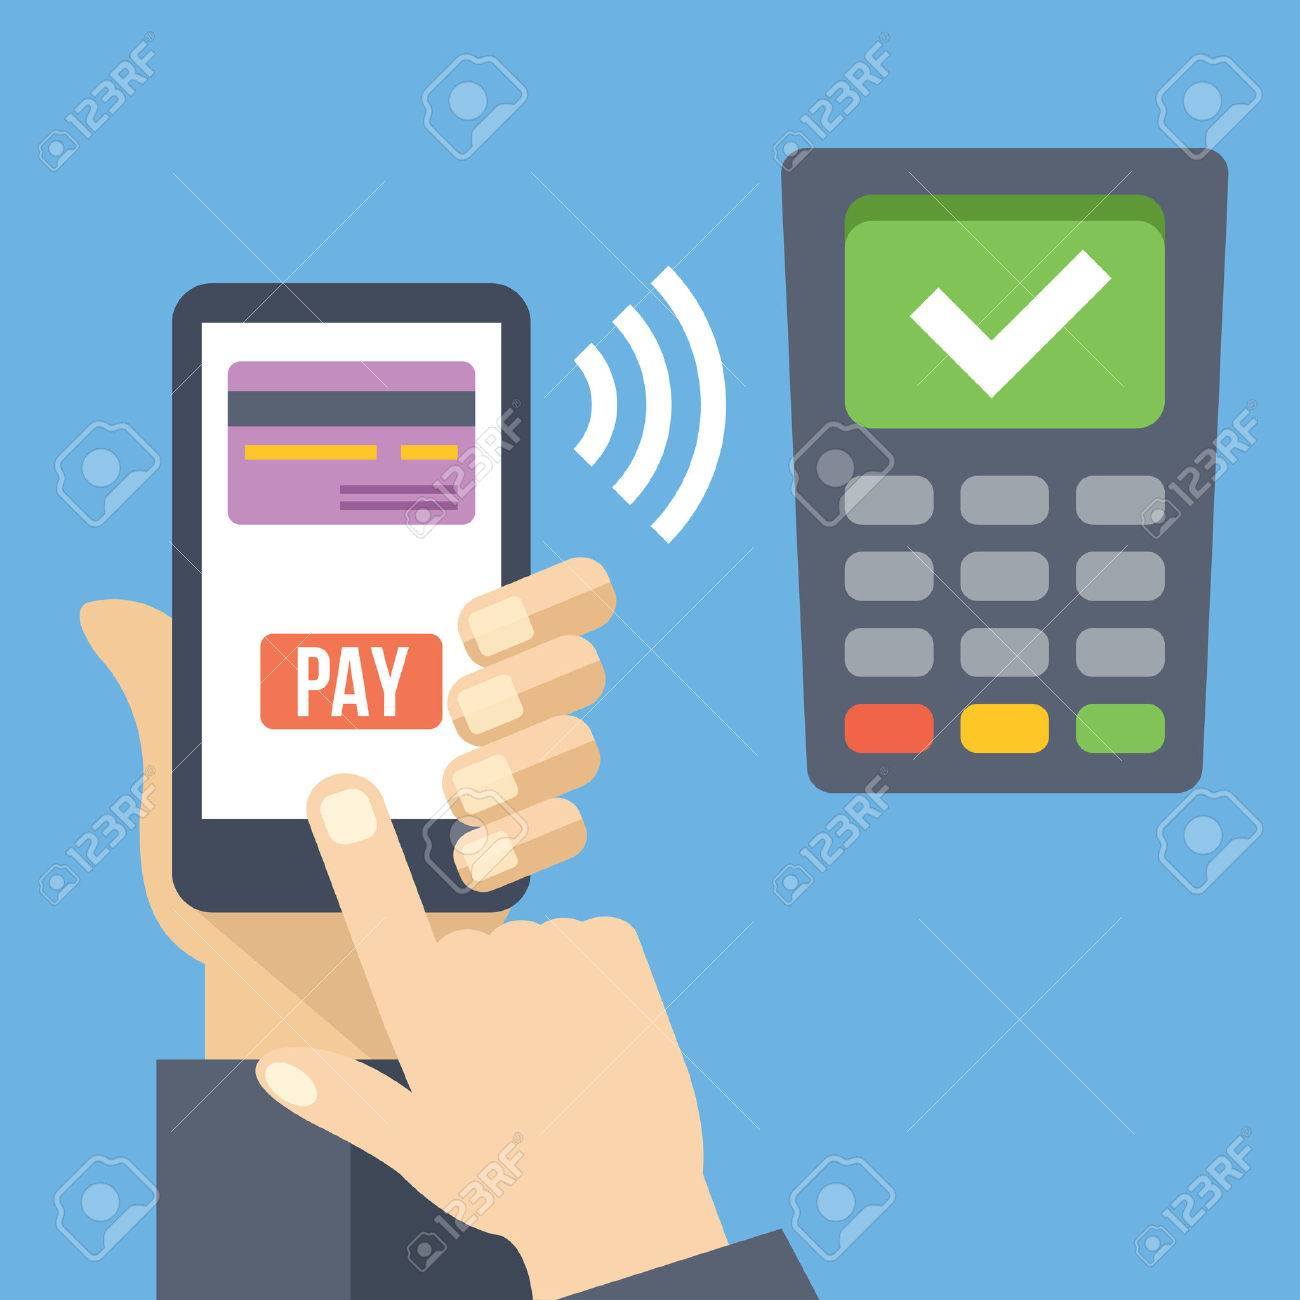 Hand with smartphone using mobile banking and mobile payment service - 46607777